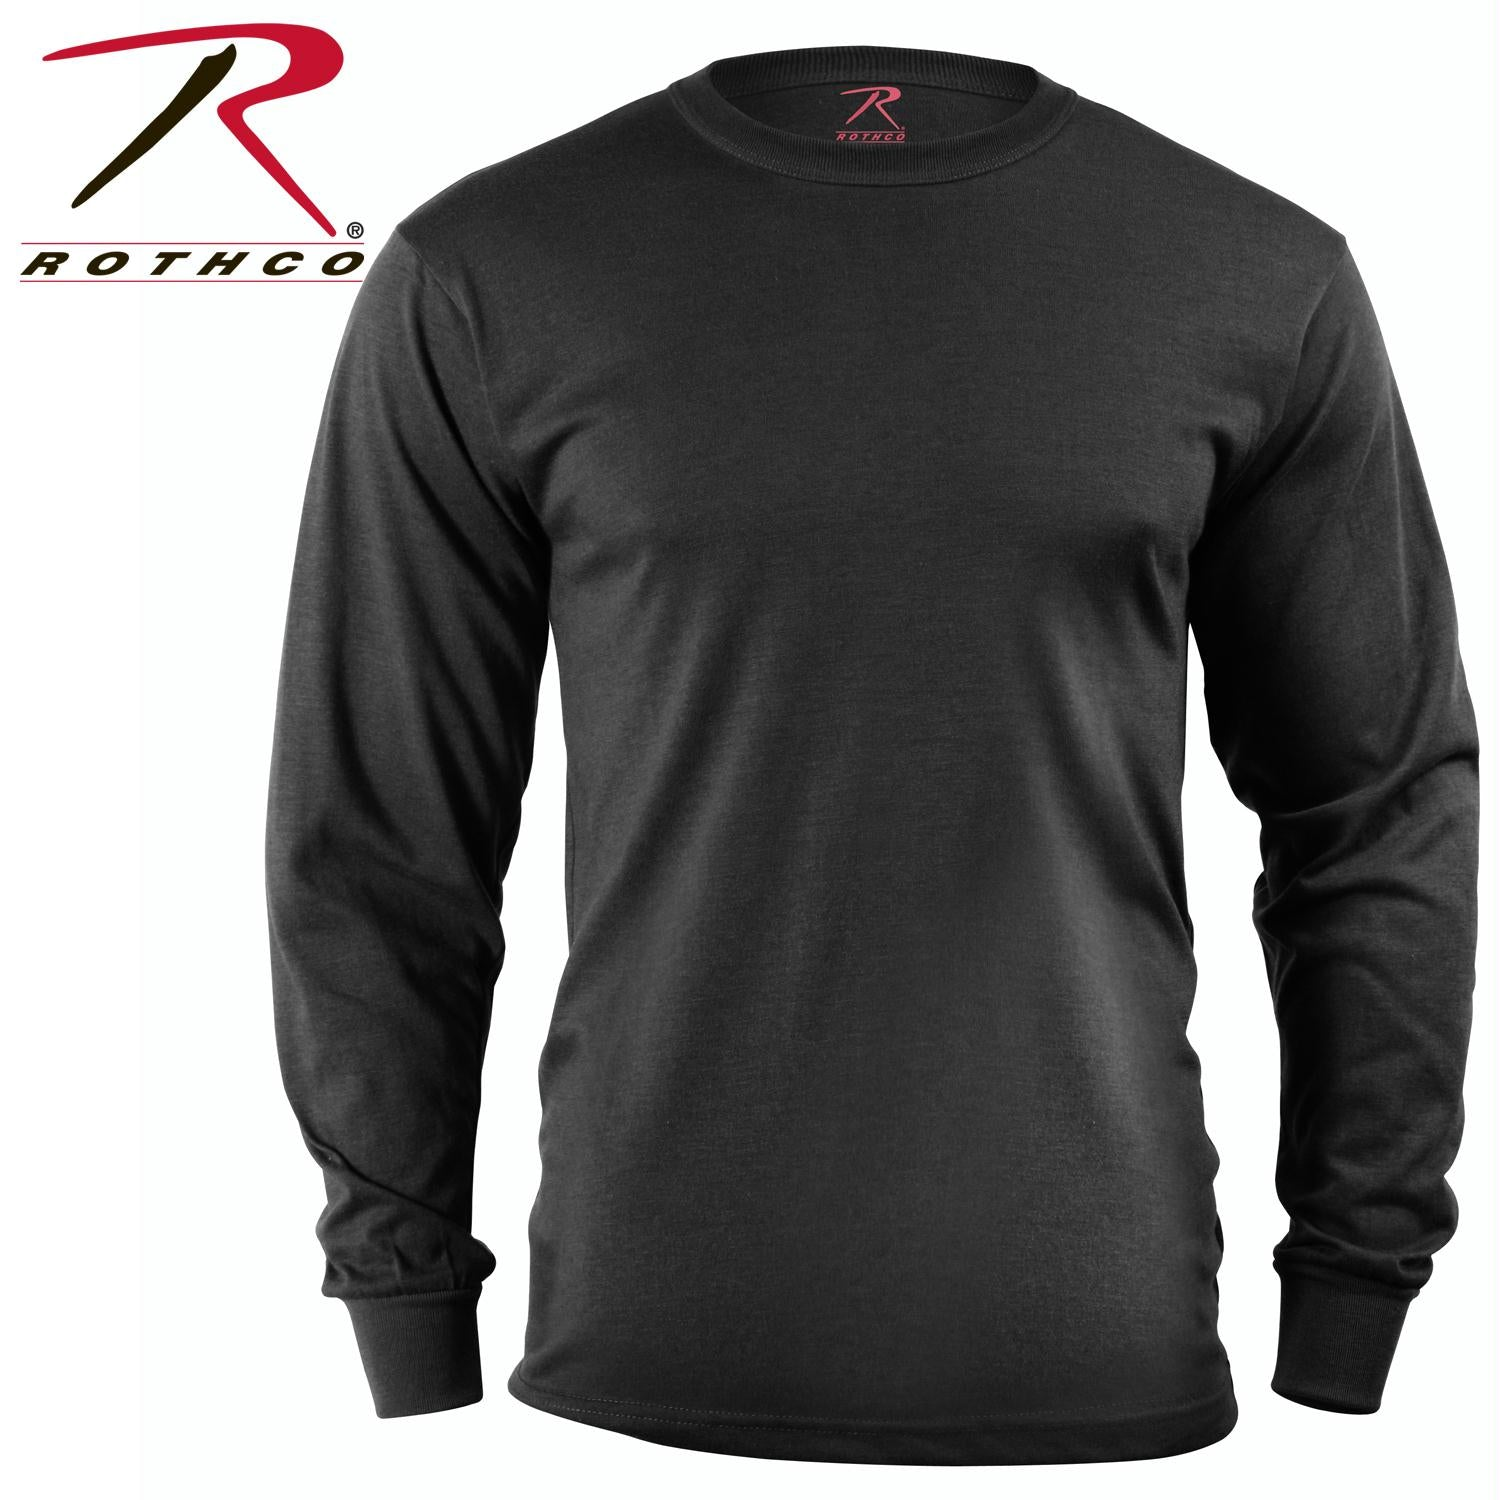 Rothco Long Sleeve Solid T-Shirt - Black / S